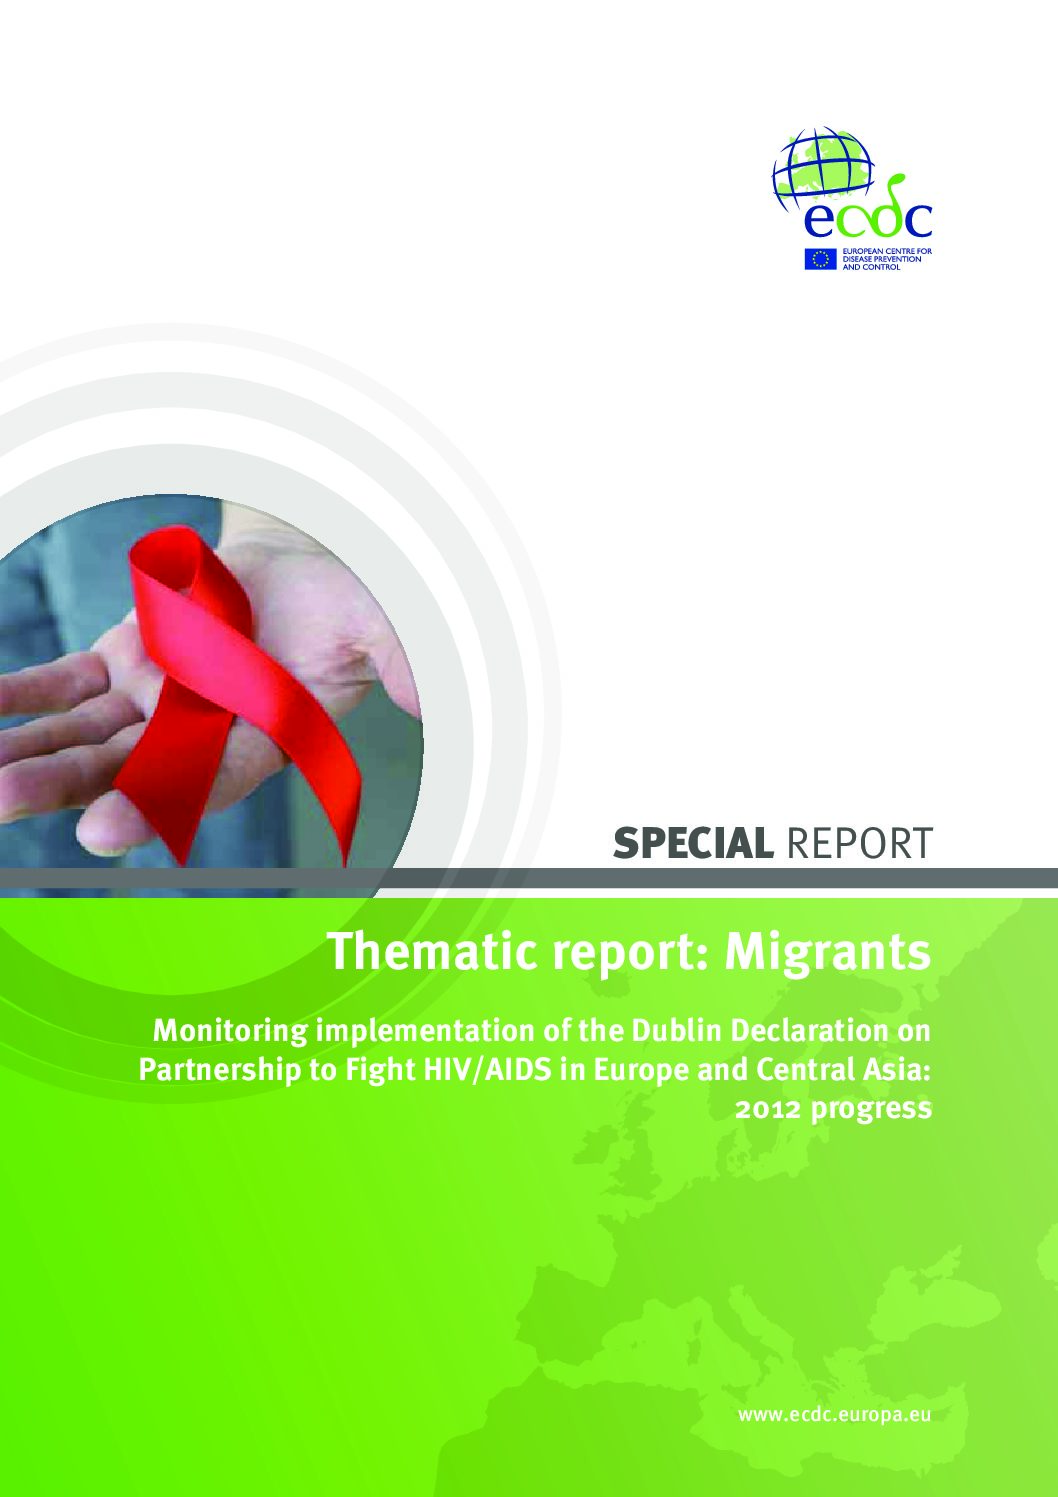 Thematic report: Migrants. Monitoring implementation of the Dublin Declaration on Partnership to Fight HIV/AIDS in Europe and Central Asia: 2012 progress